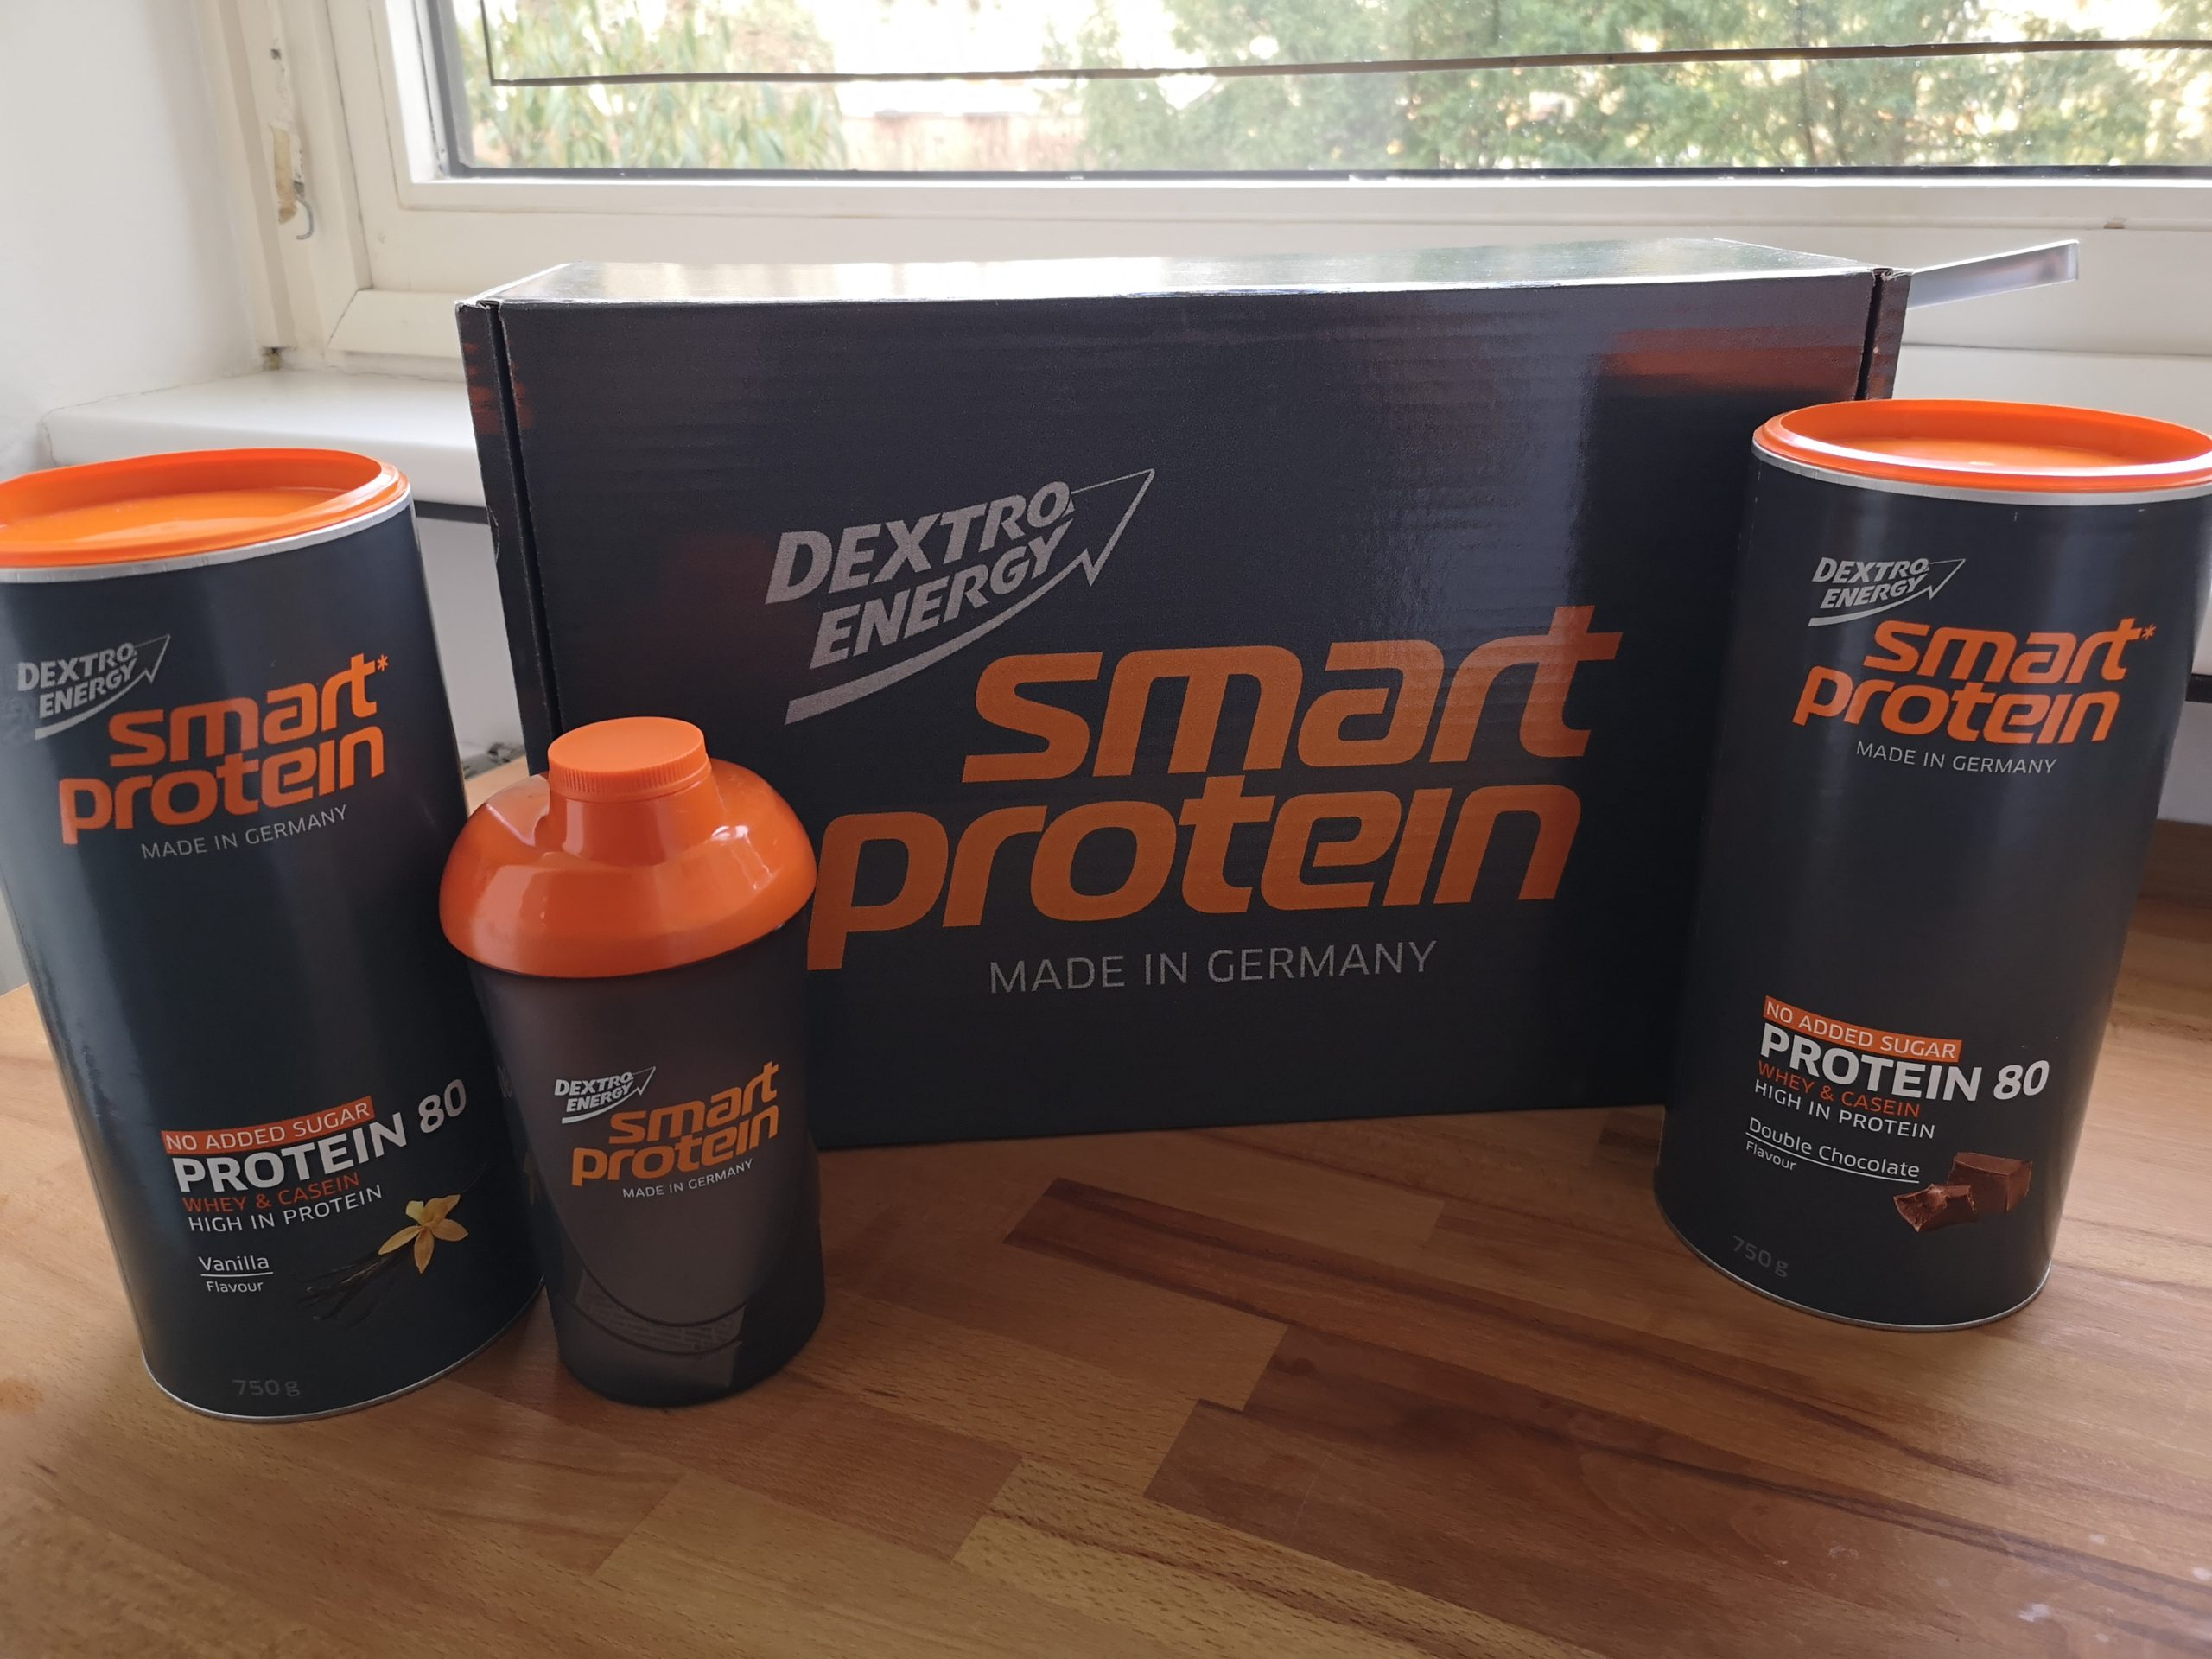 Dextro Energy Smart Protein